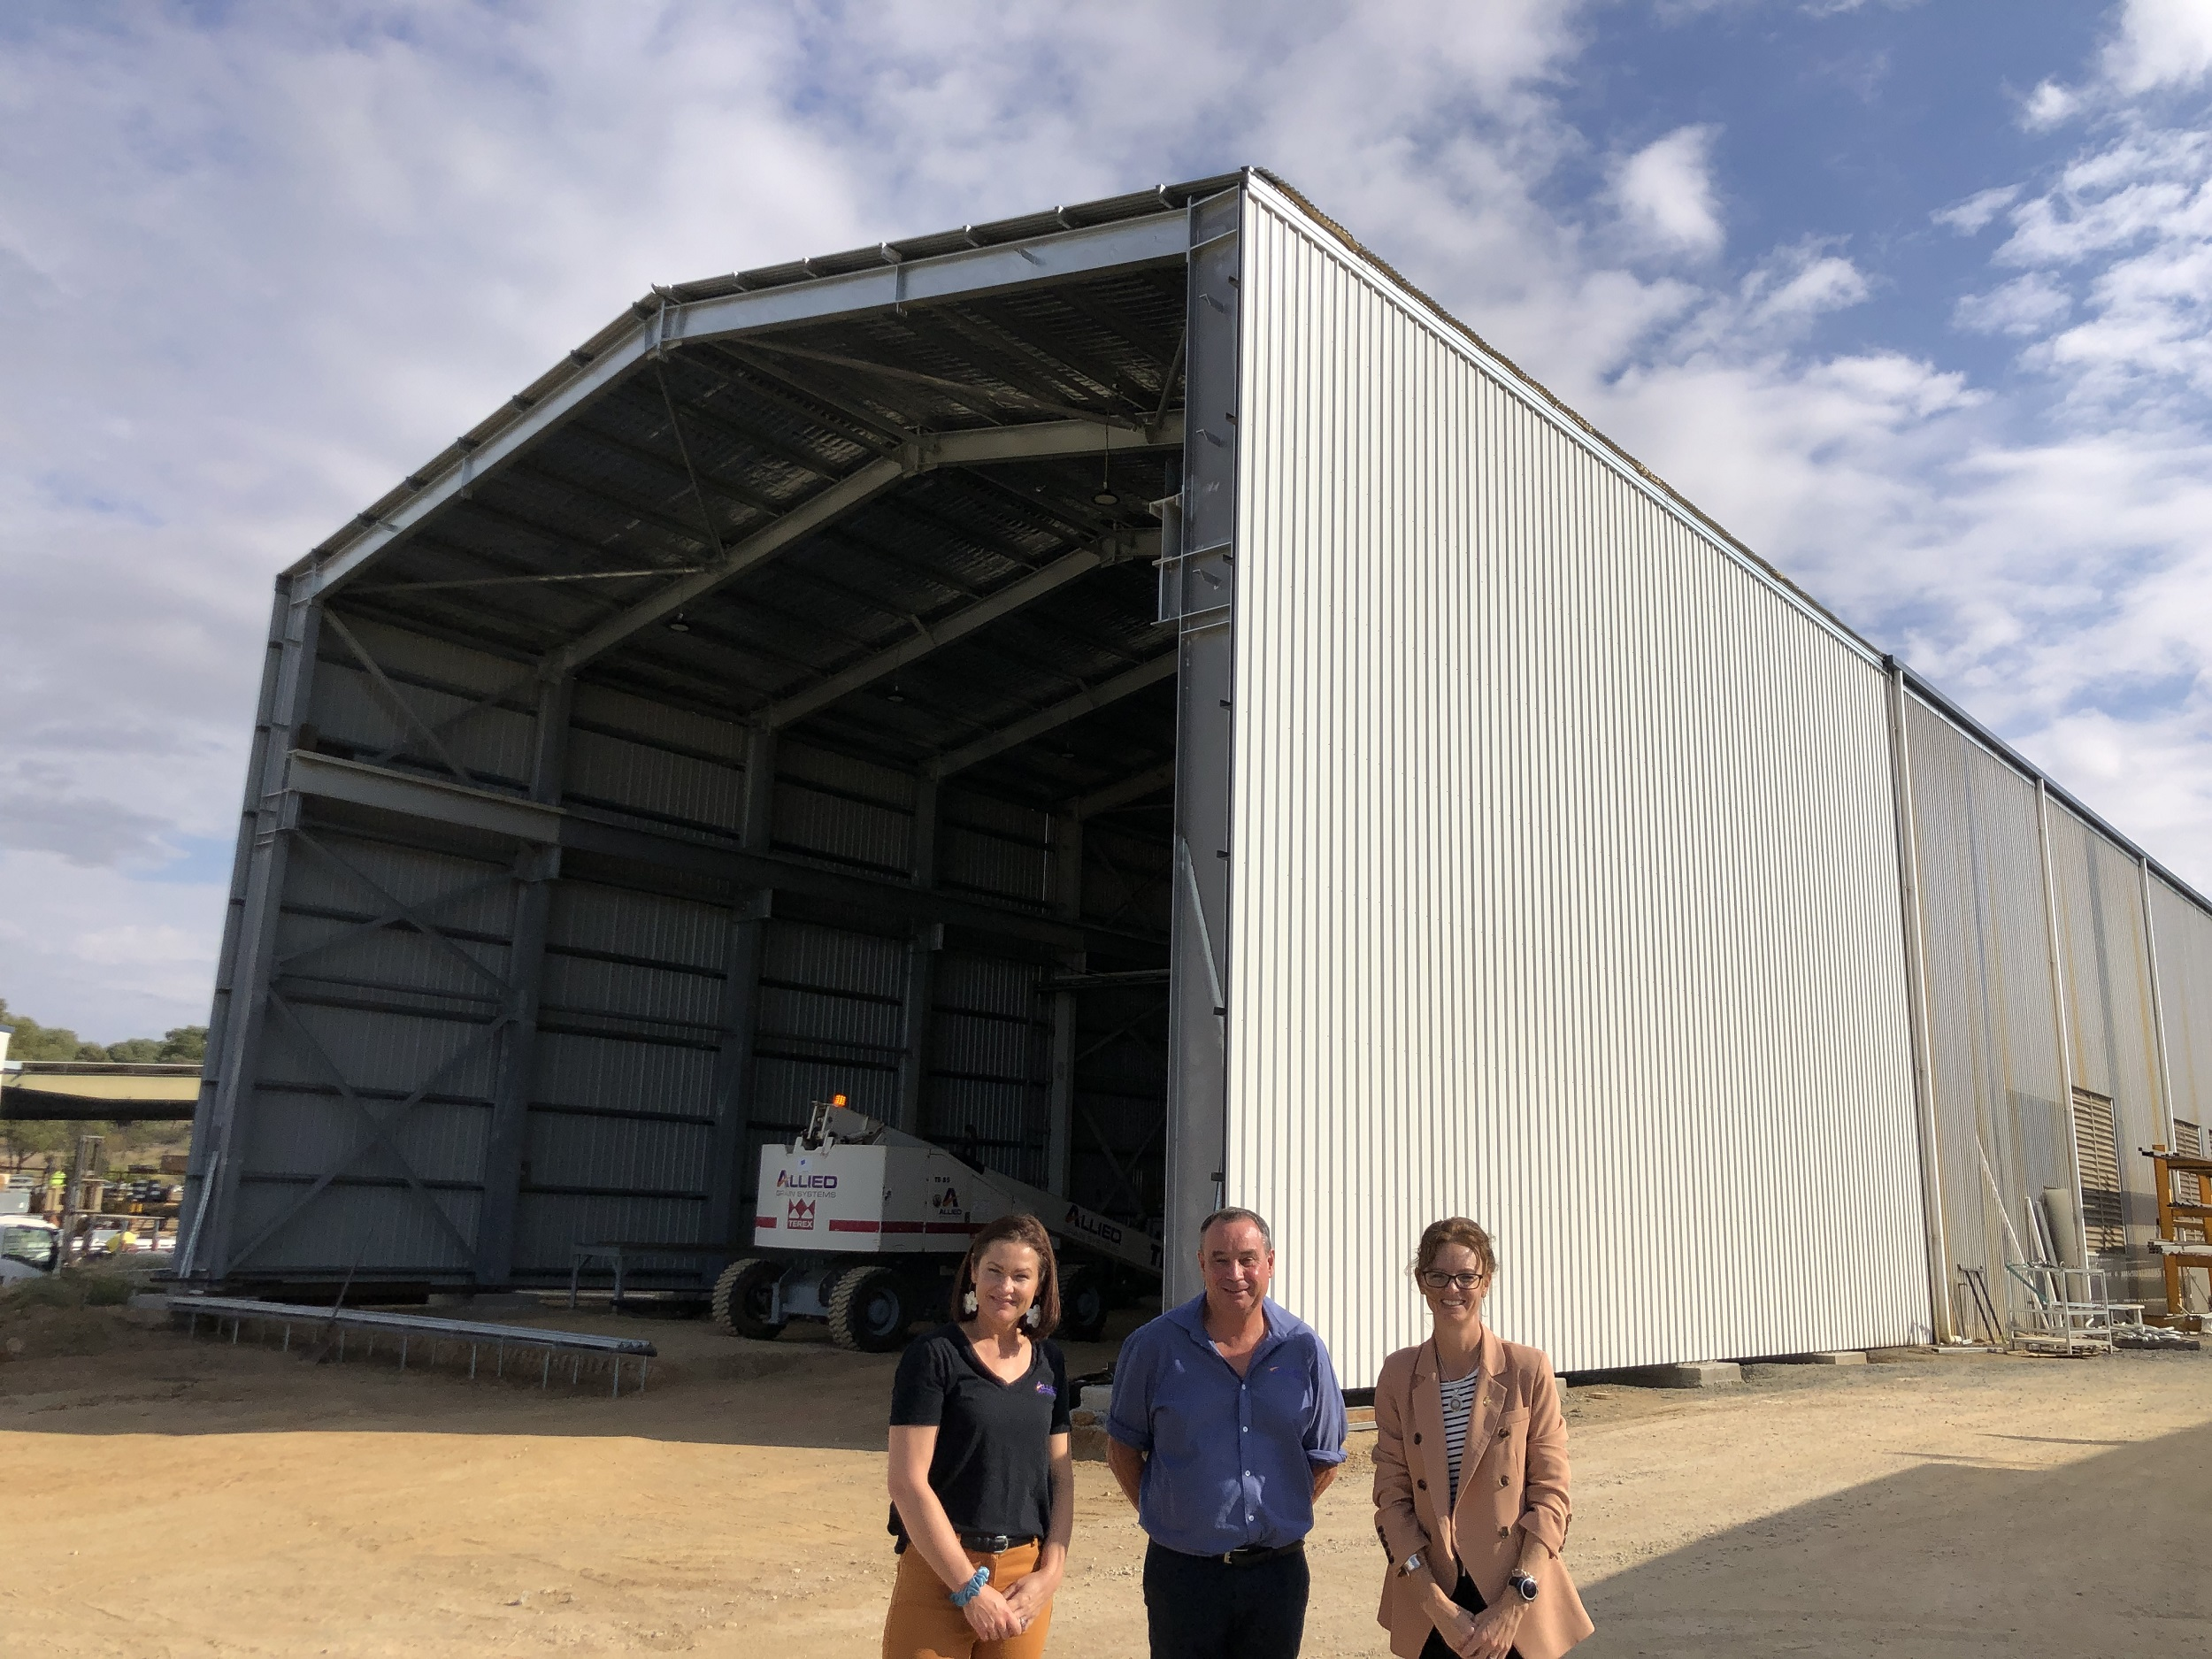 Sheree Gibson and John White and Steph Cooke stand in front of a very large shed, inside is apiece of machinery with 'allied' written on it.